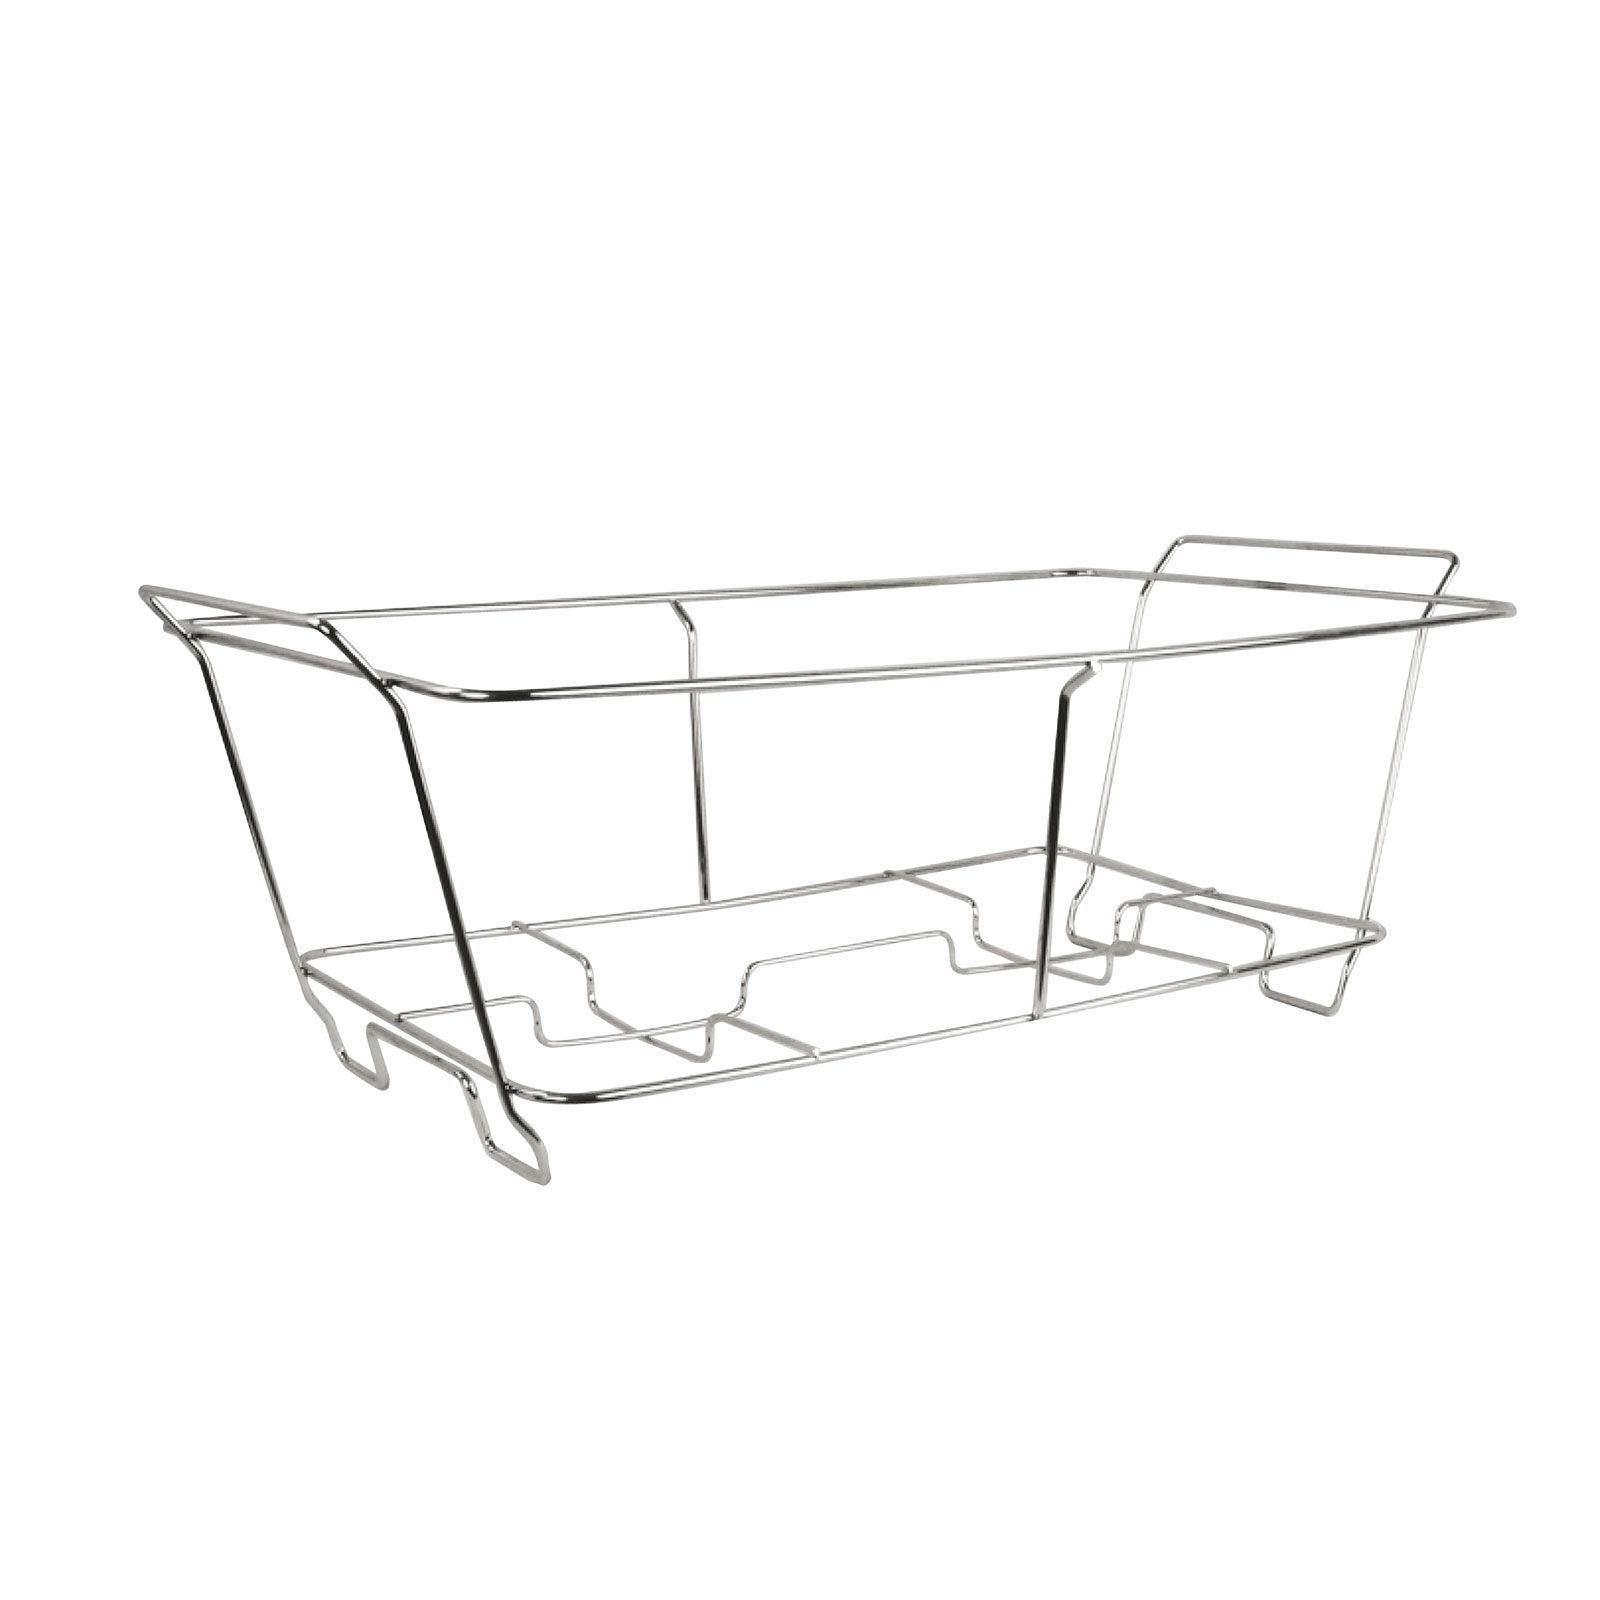 Winco C-2F chafing dish frame / stand